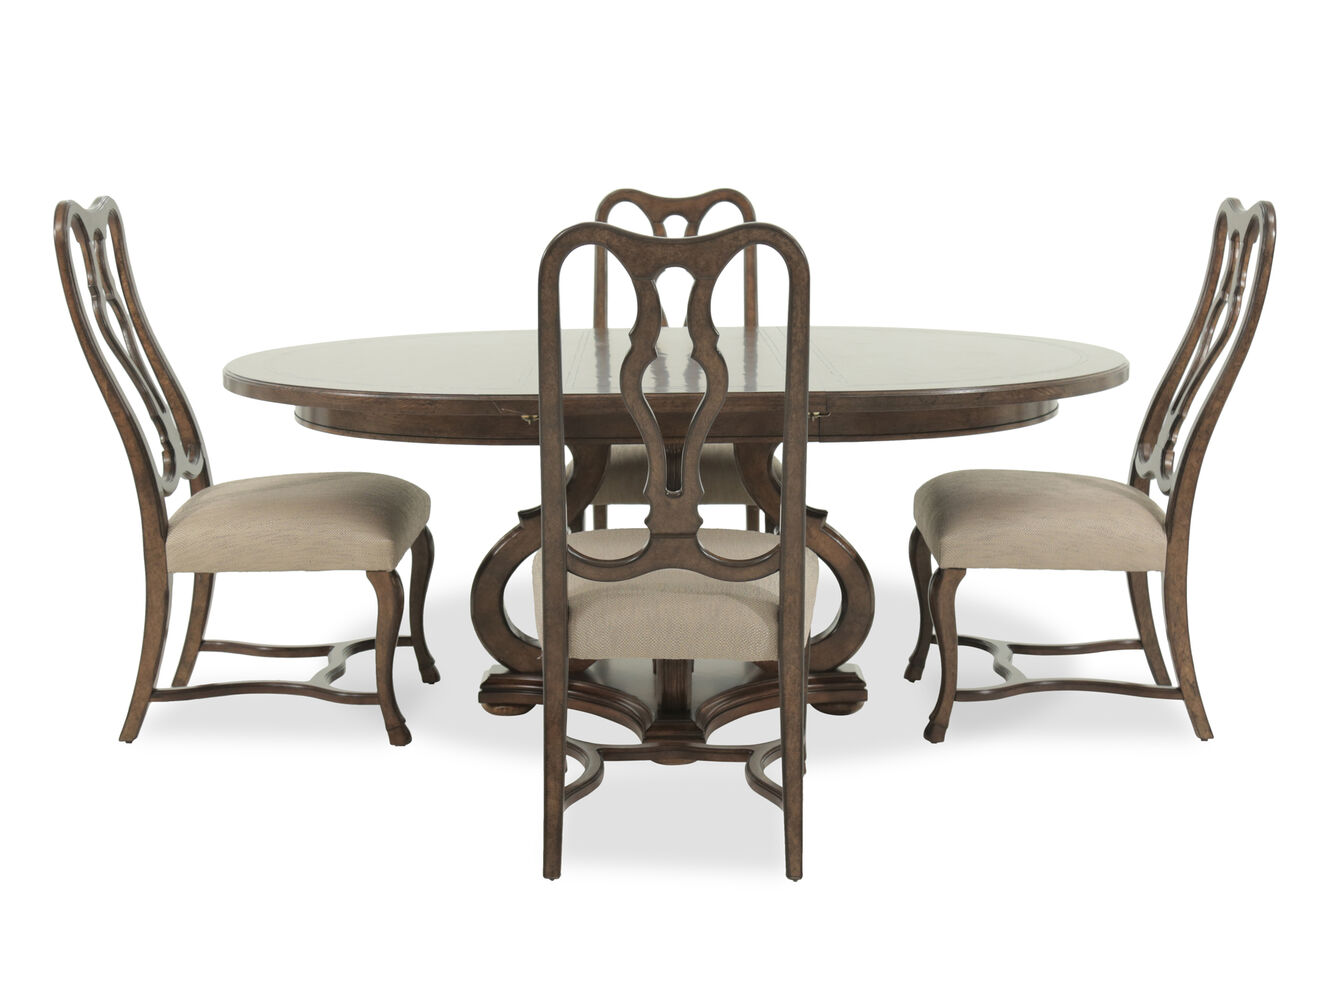 Captivating Mathis Brothers Dining Room Sets 94 For Your